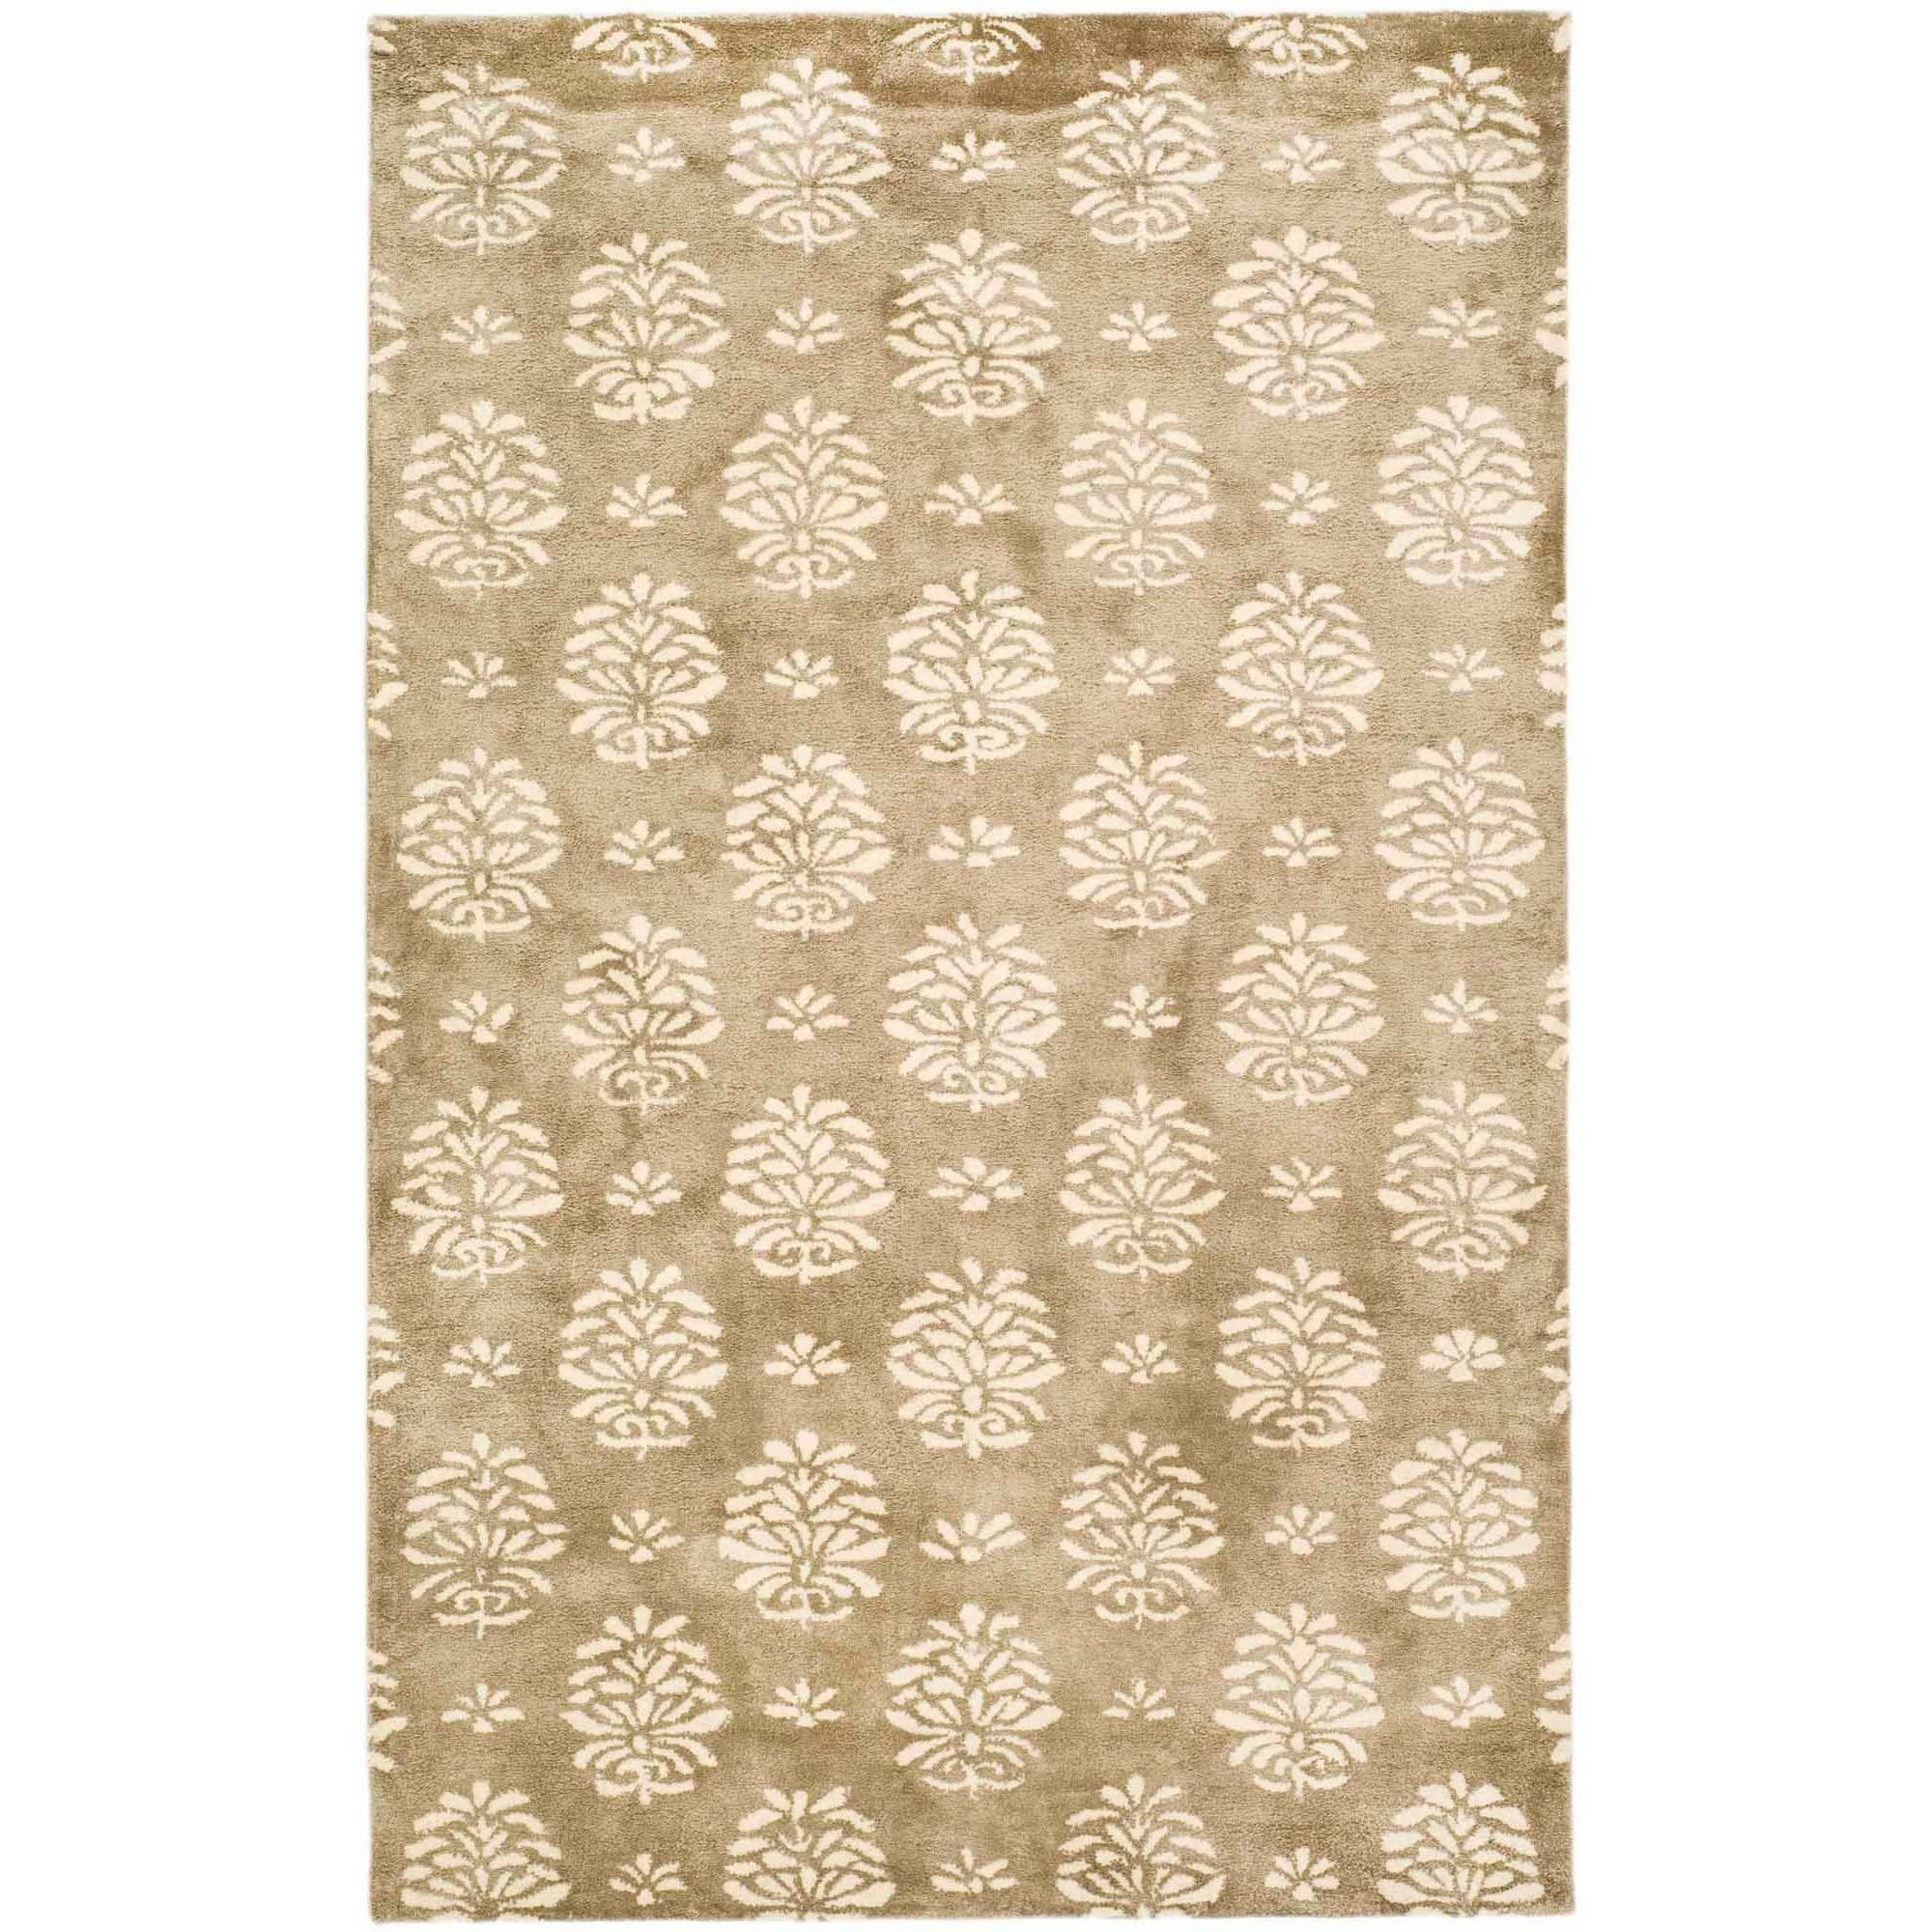 Safavieh Hand-Tufted Wool Area Rug